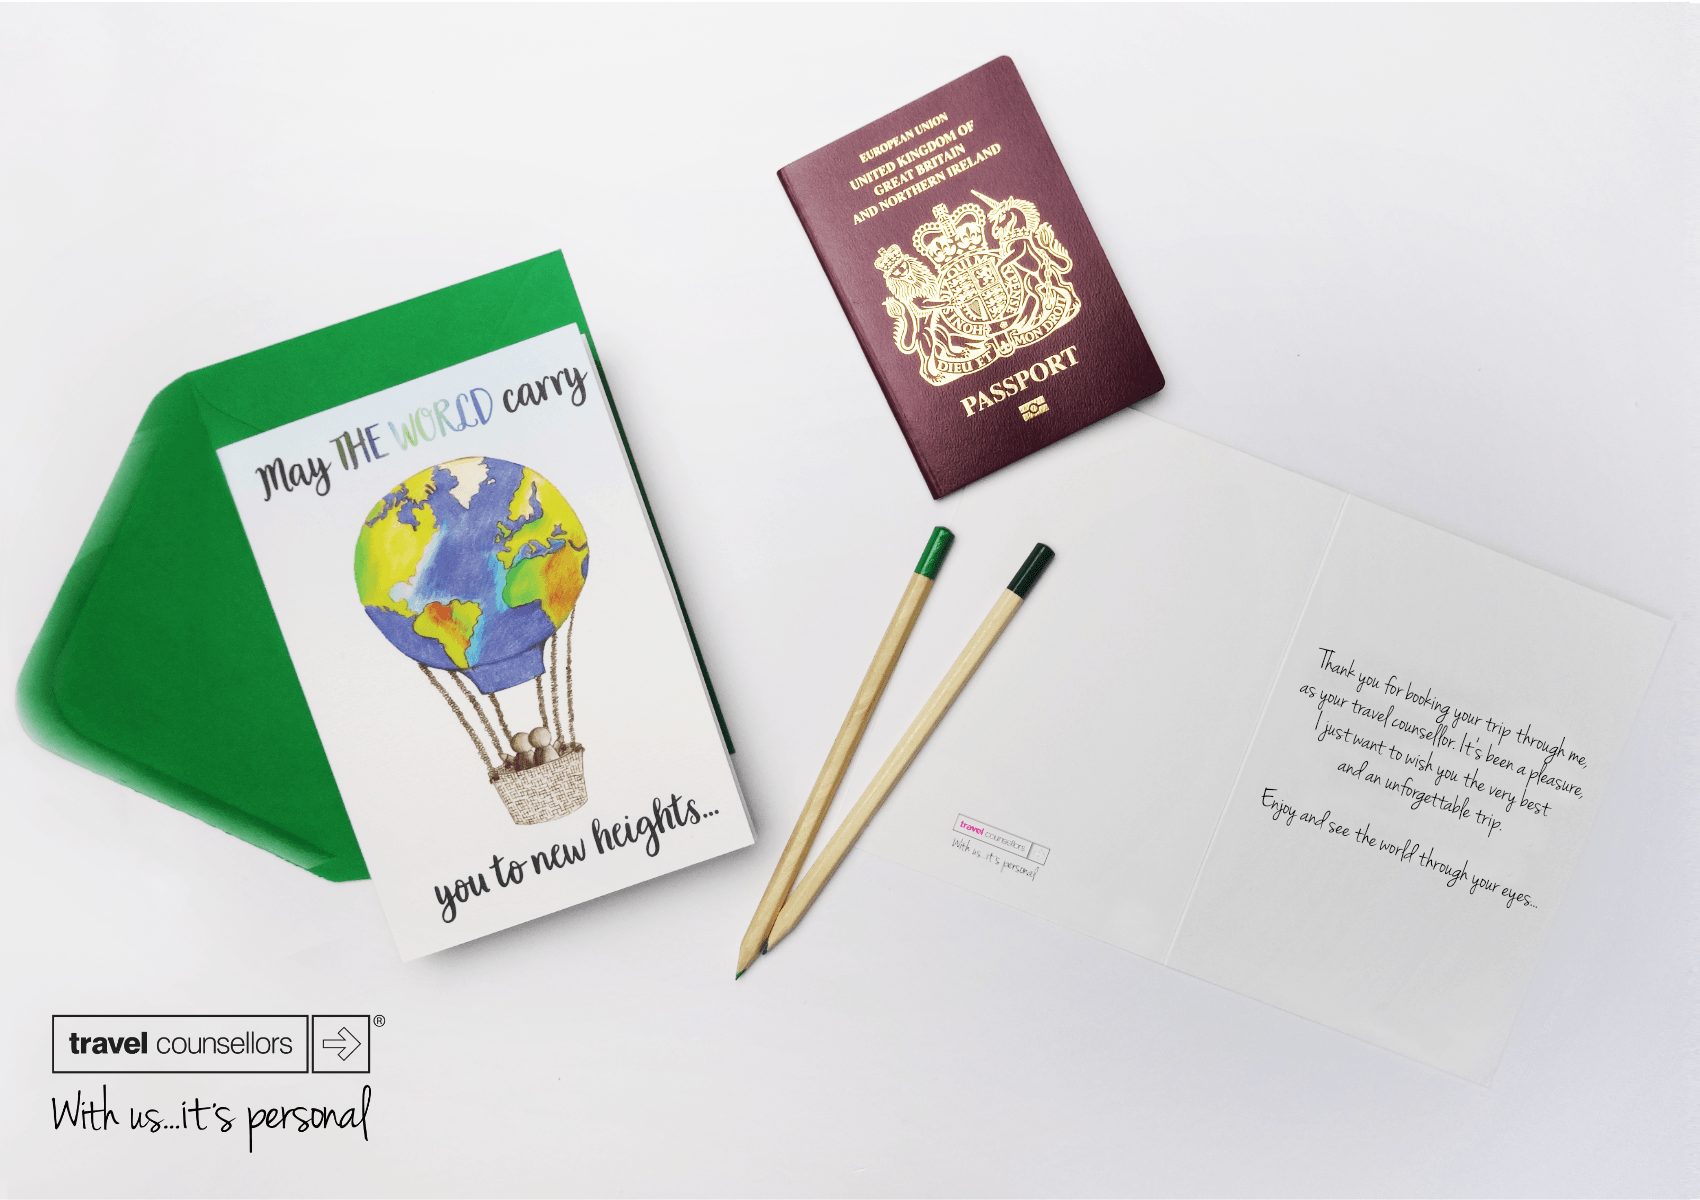 Custom corporate enjoy your travels agency greeting card for businesses with bespoke hand drawn world hot air balloon and logo in bulk